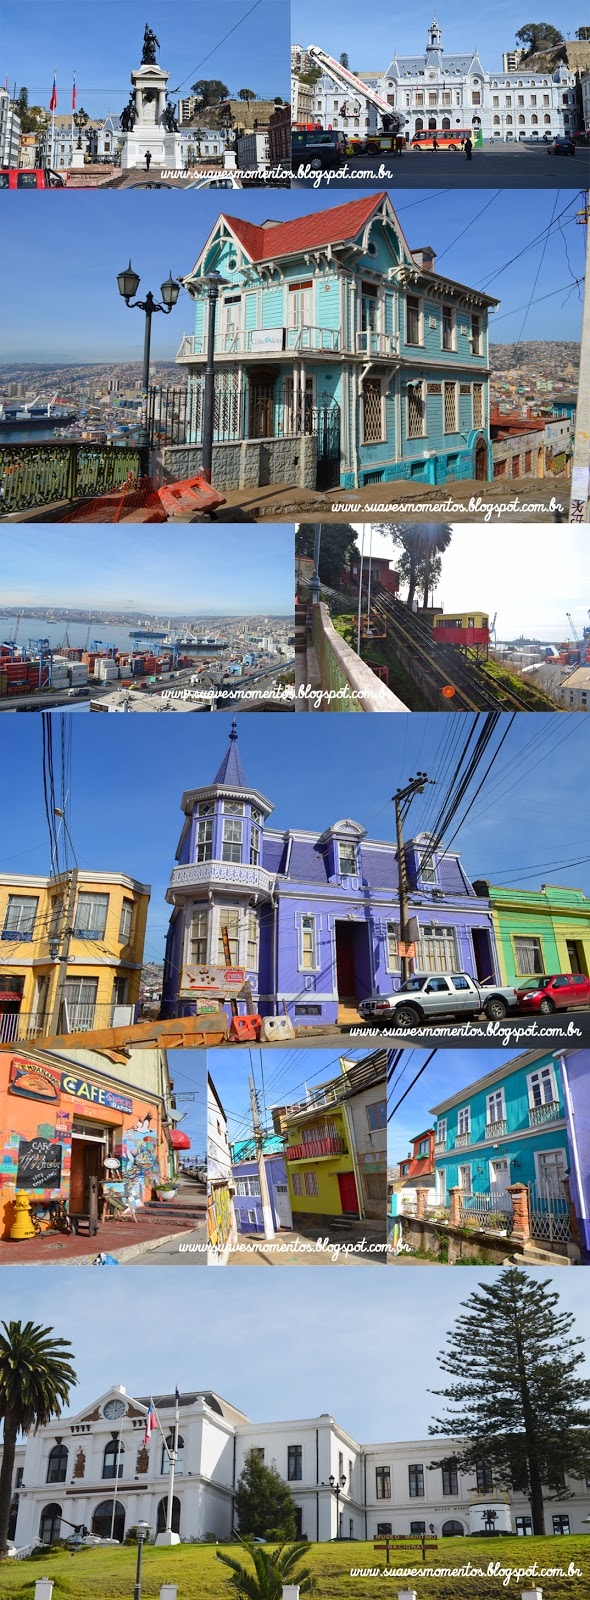 valparaiso no chile